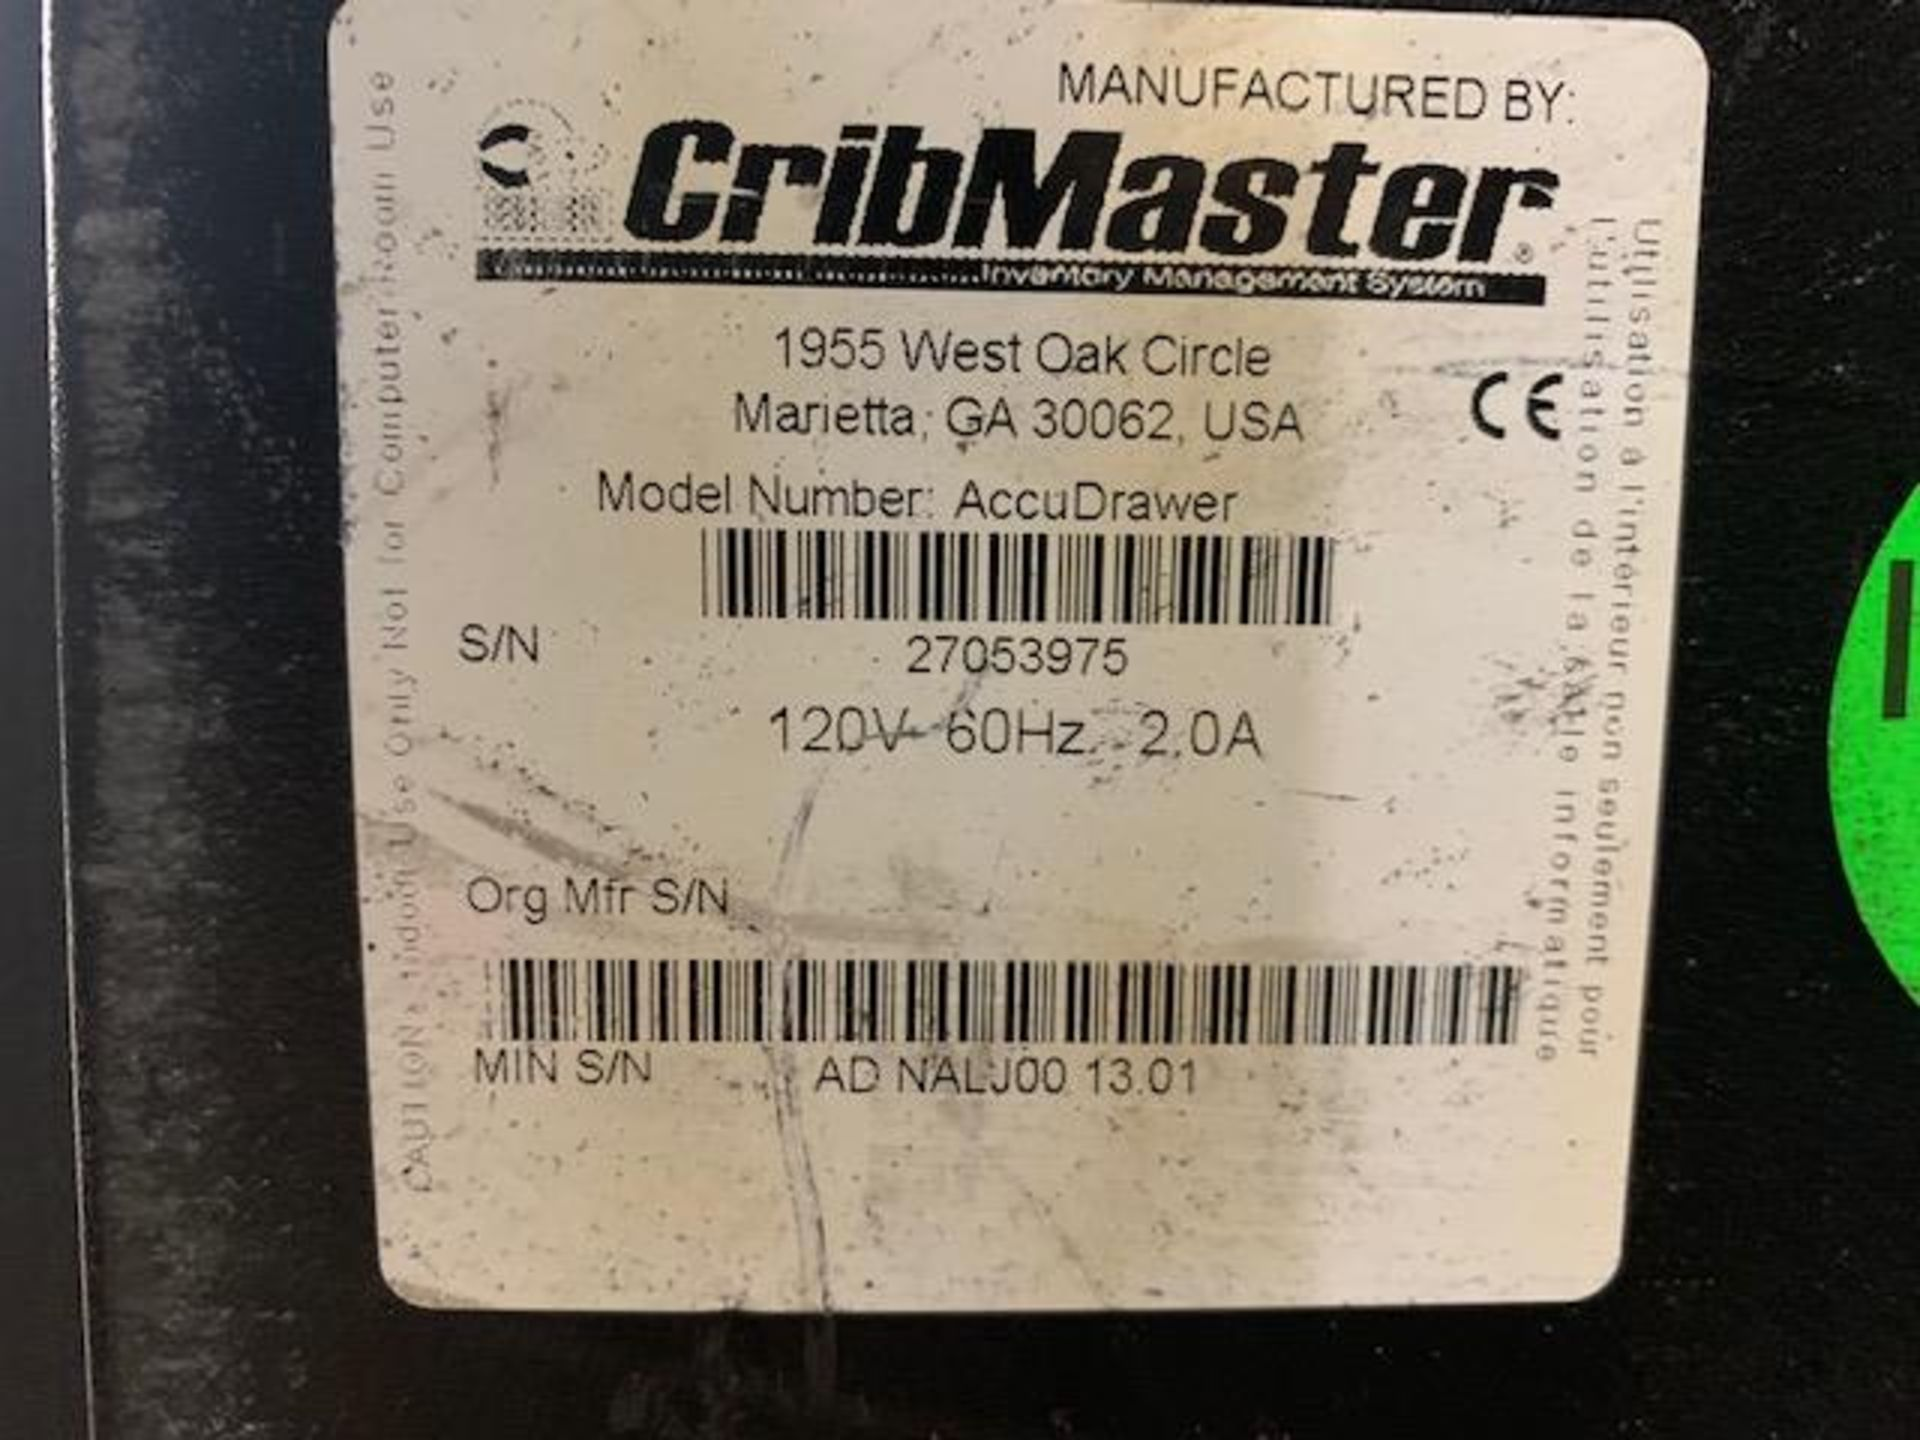 Cribmaster AccuDrawer - Image 2 of 10